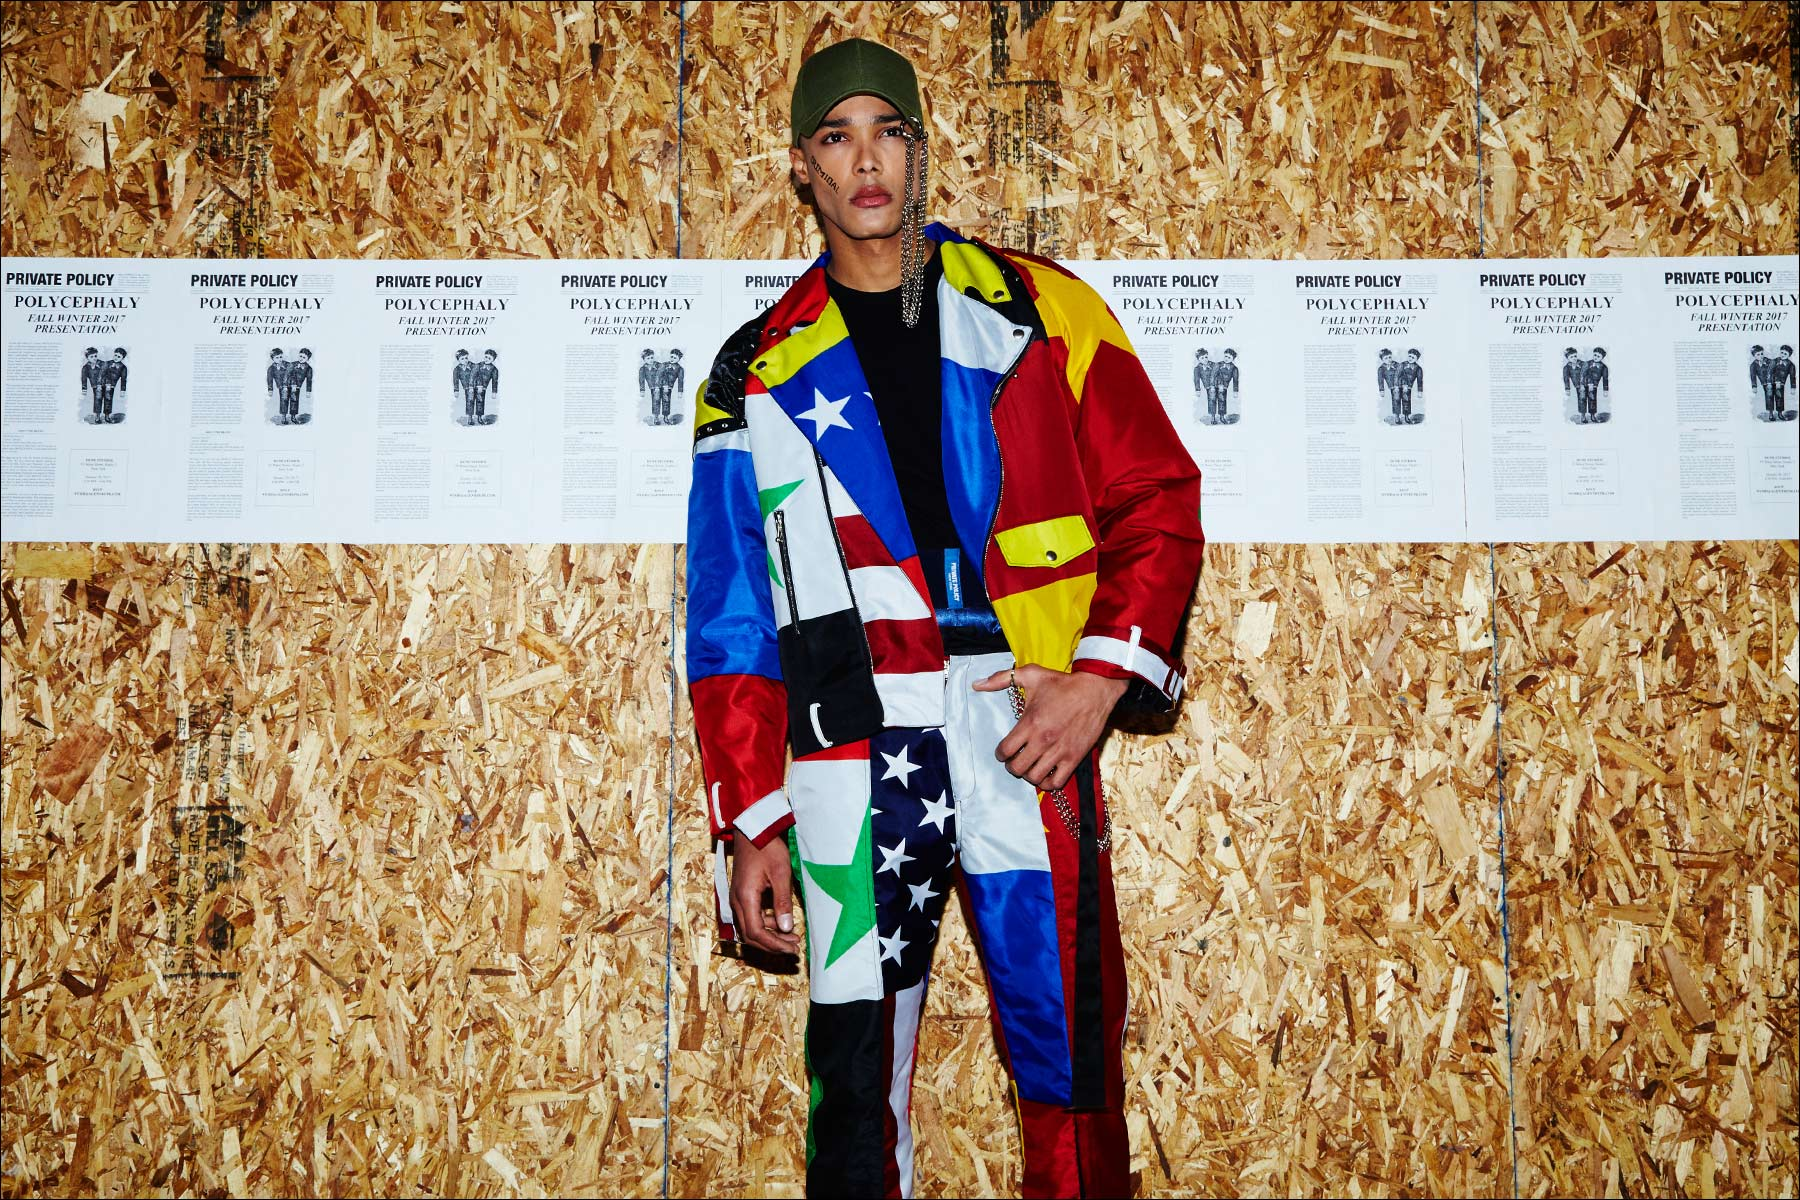 A jacket and trouser set constructed from flags on model Josh Bartley, photographed at the Private Policy F/W17 menswear presentation. Photography by Alexander Thompson for Ponyboy magazine NY.